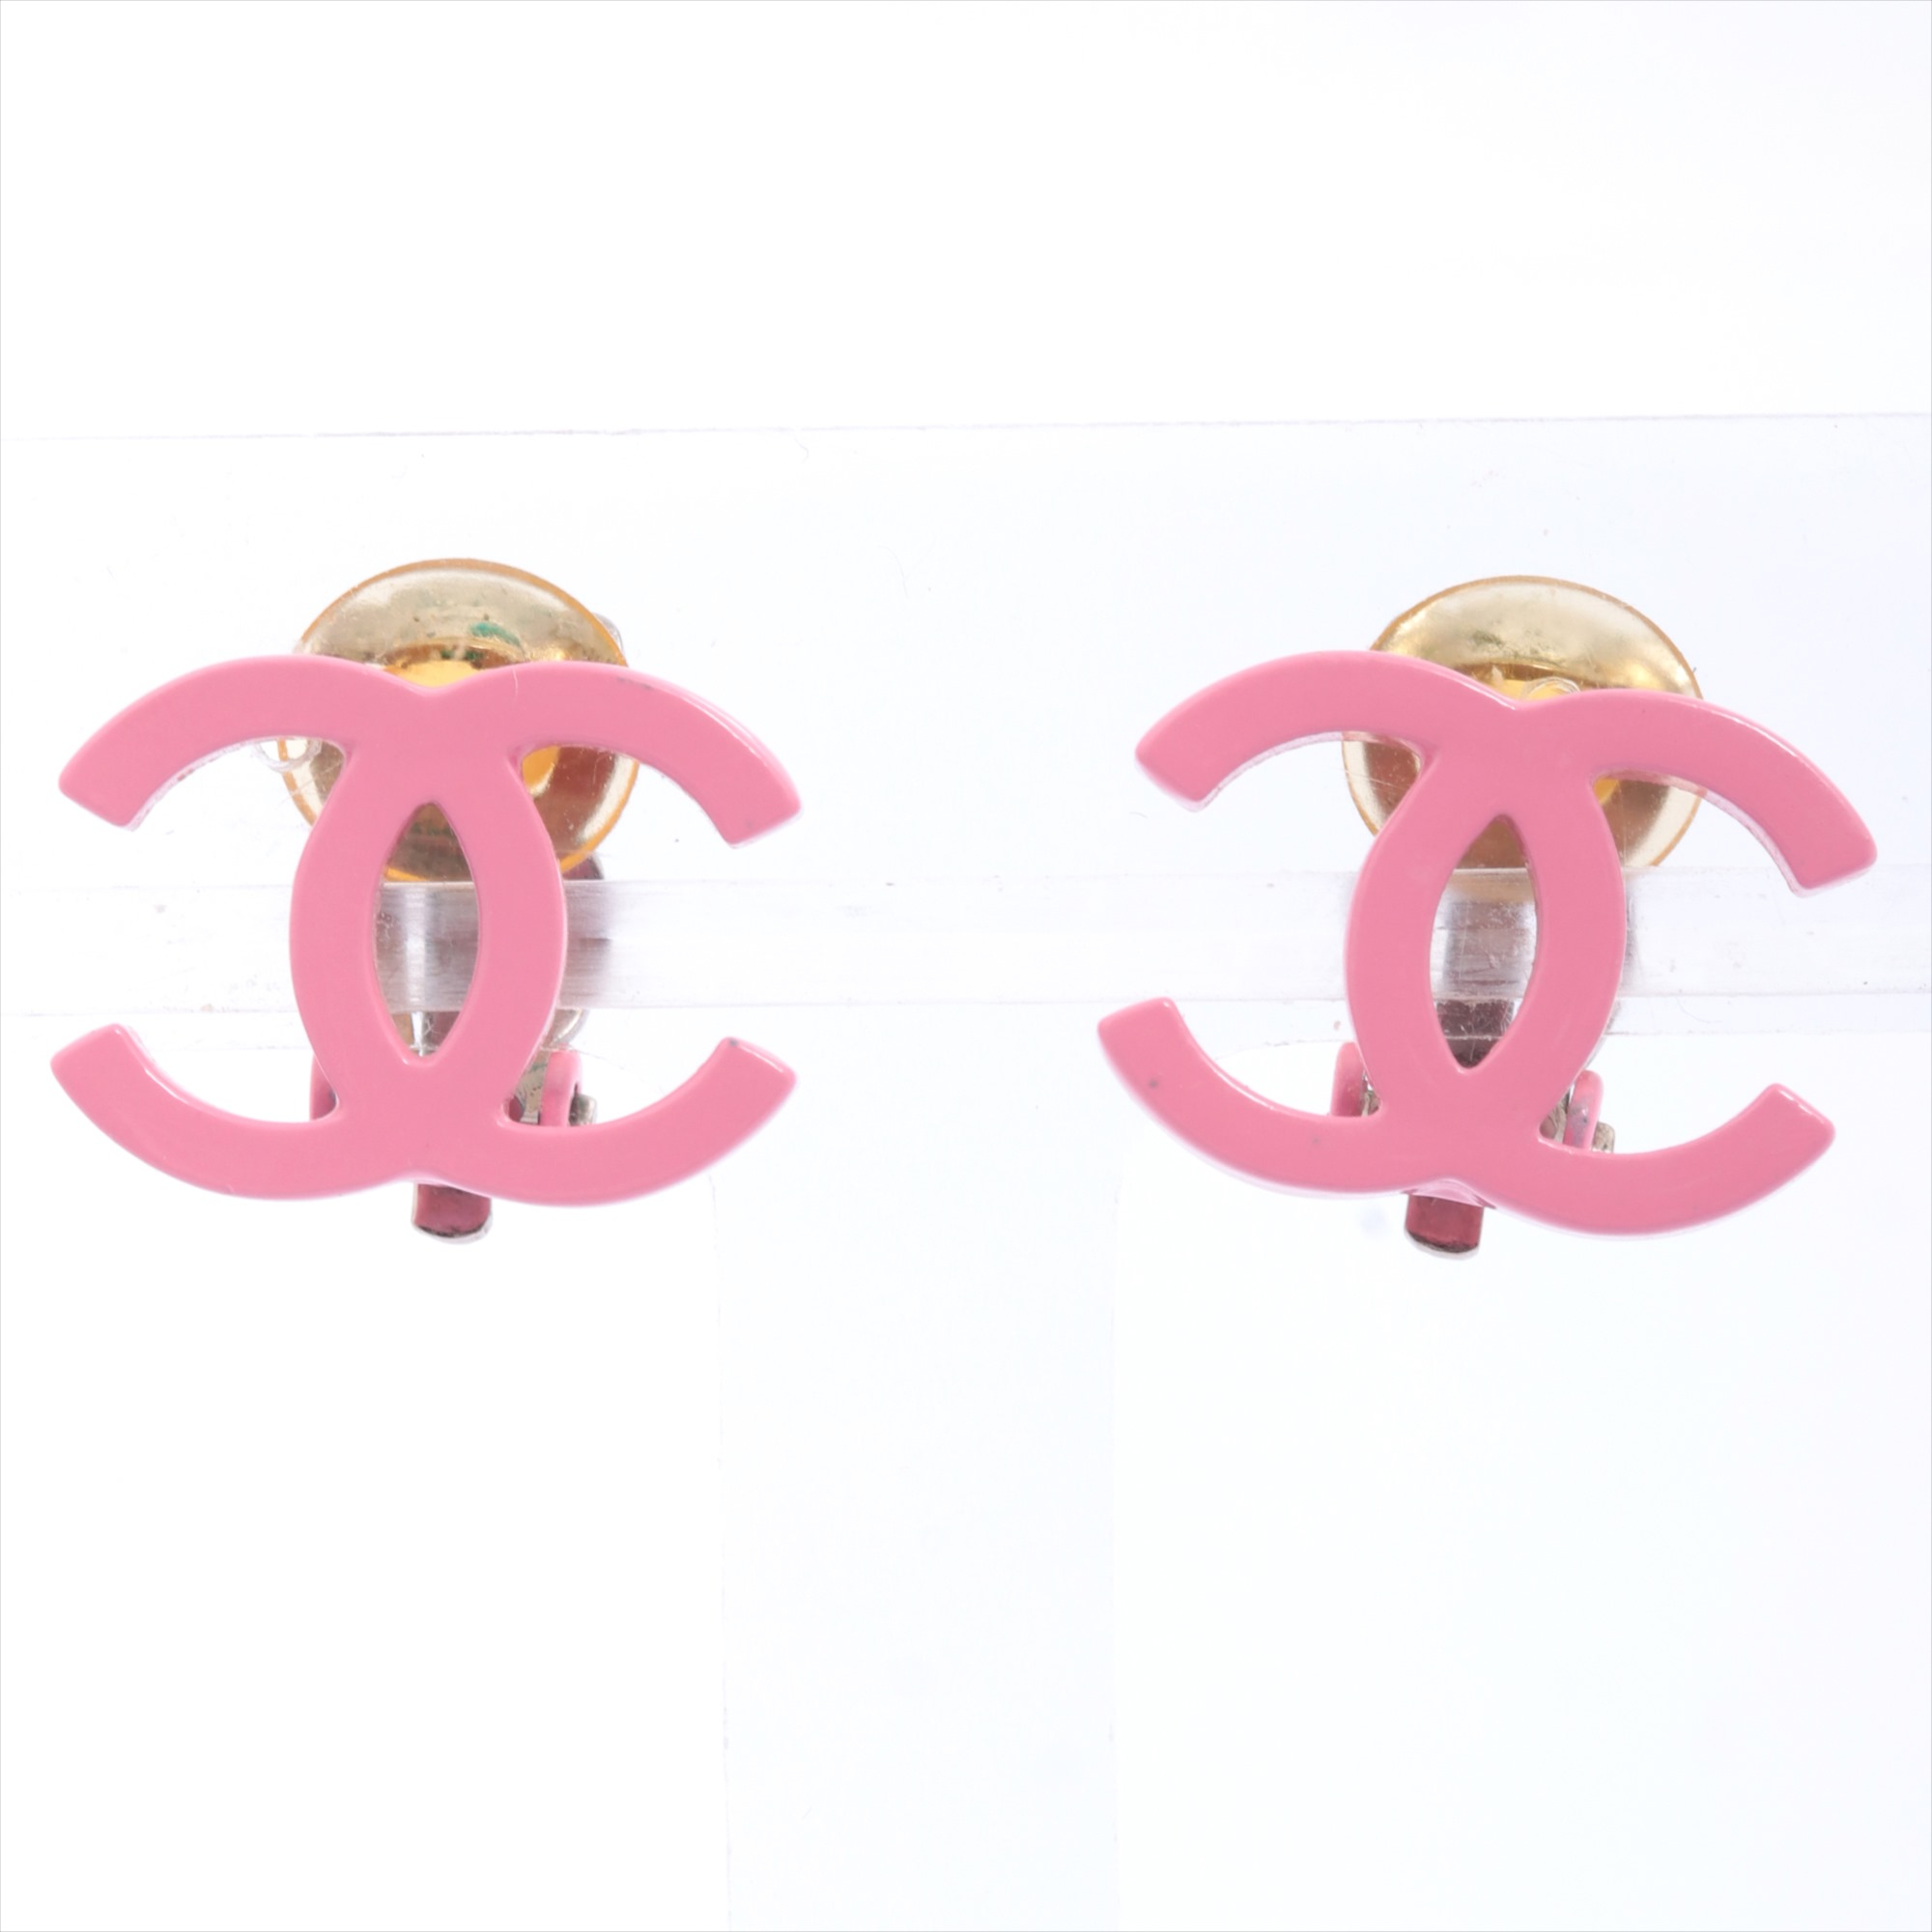 [Used goods] Chanel Coco mark earrings (for both ears) brass pink 04C